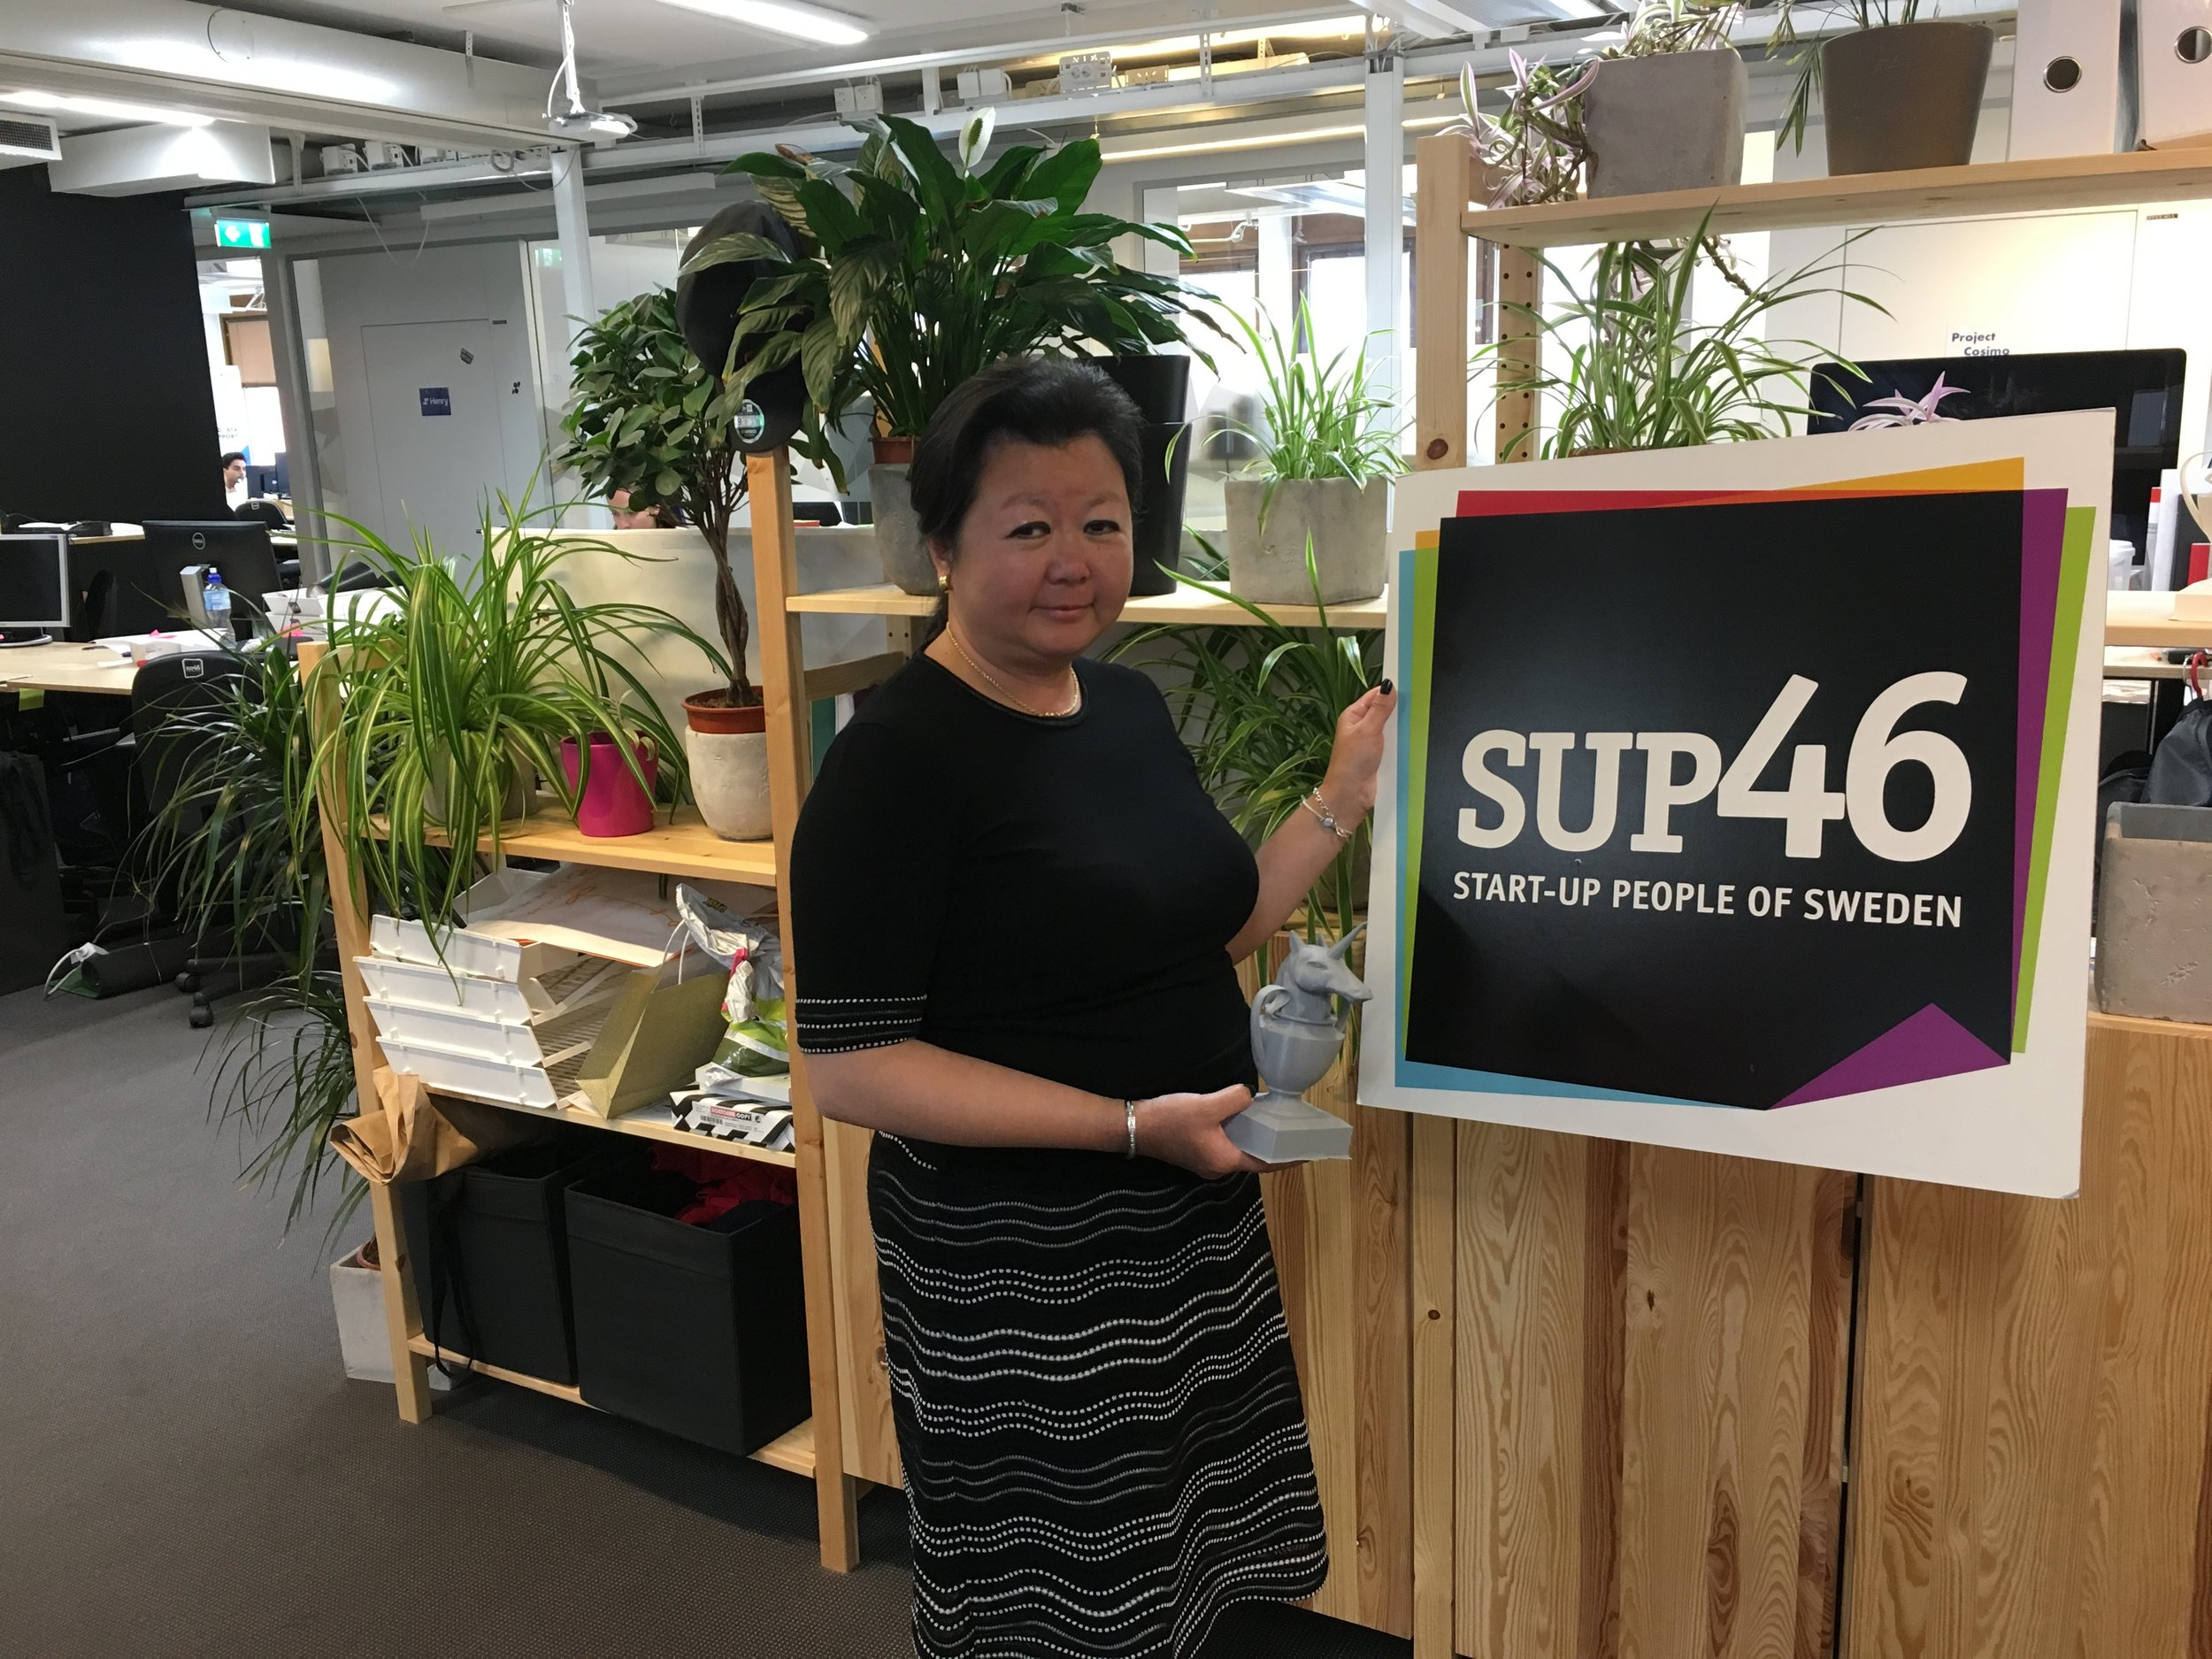 Nathalie with SUP46 sign and 3D-printed Unicorn statue